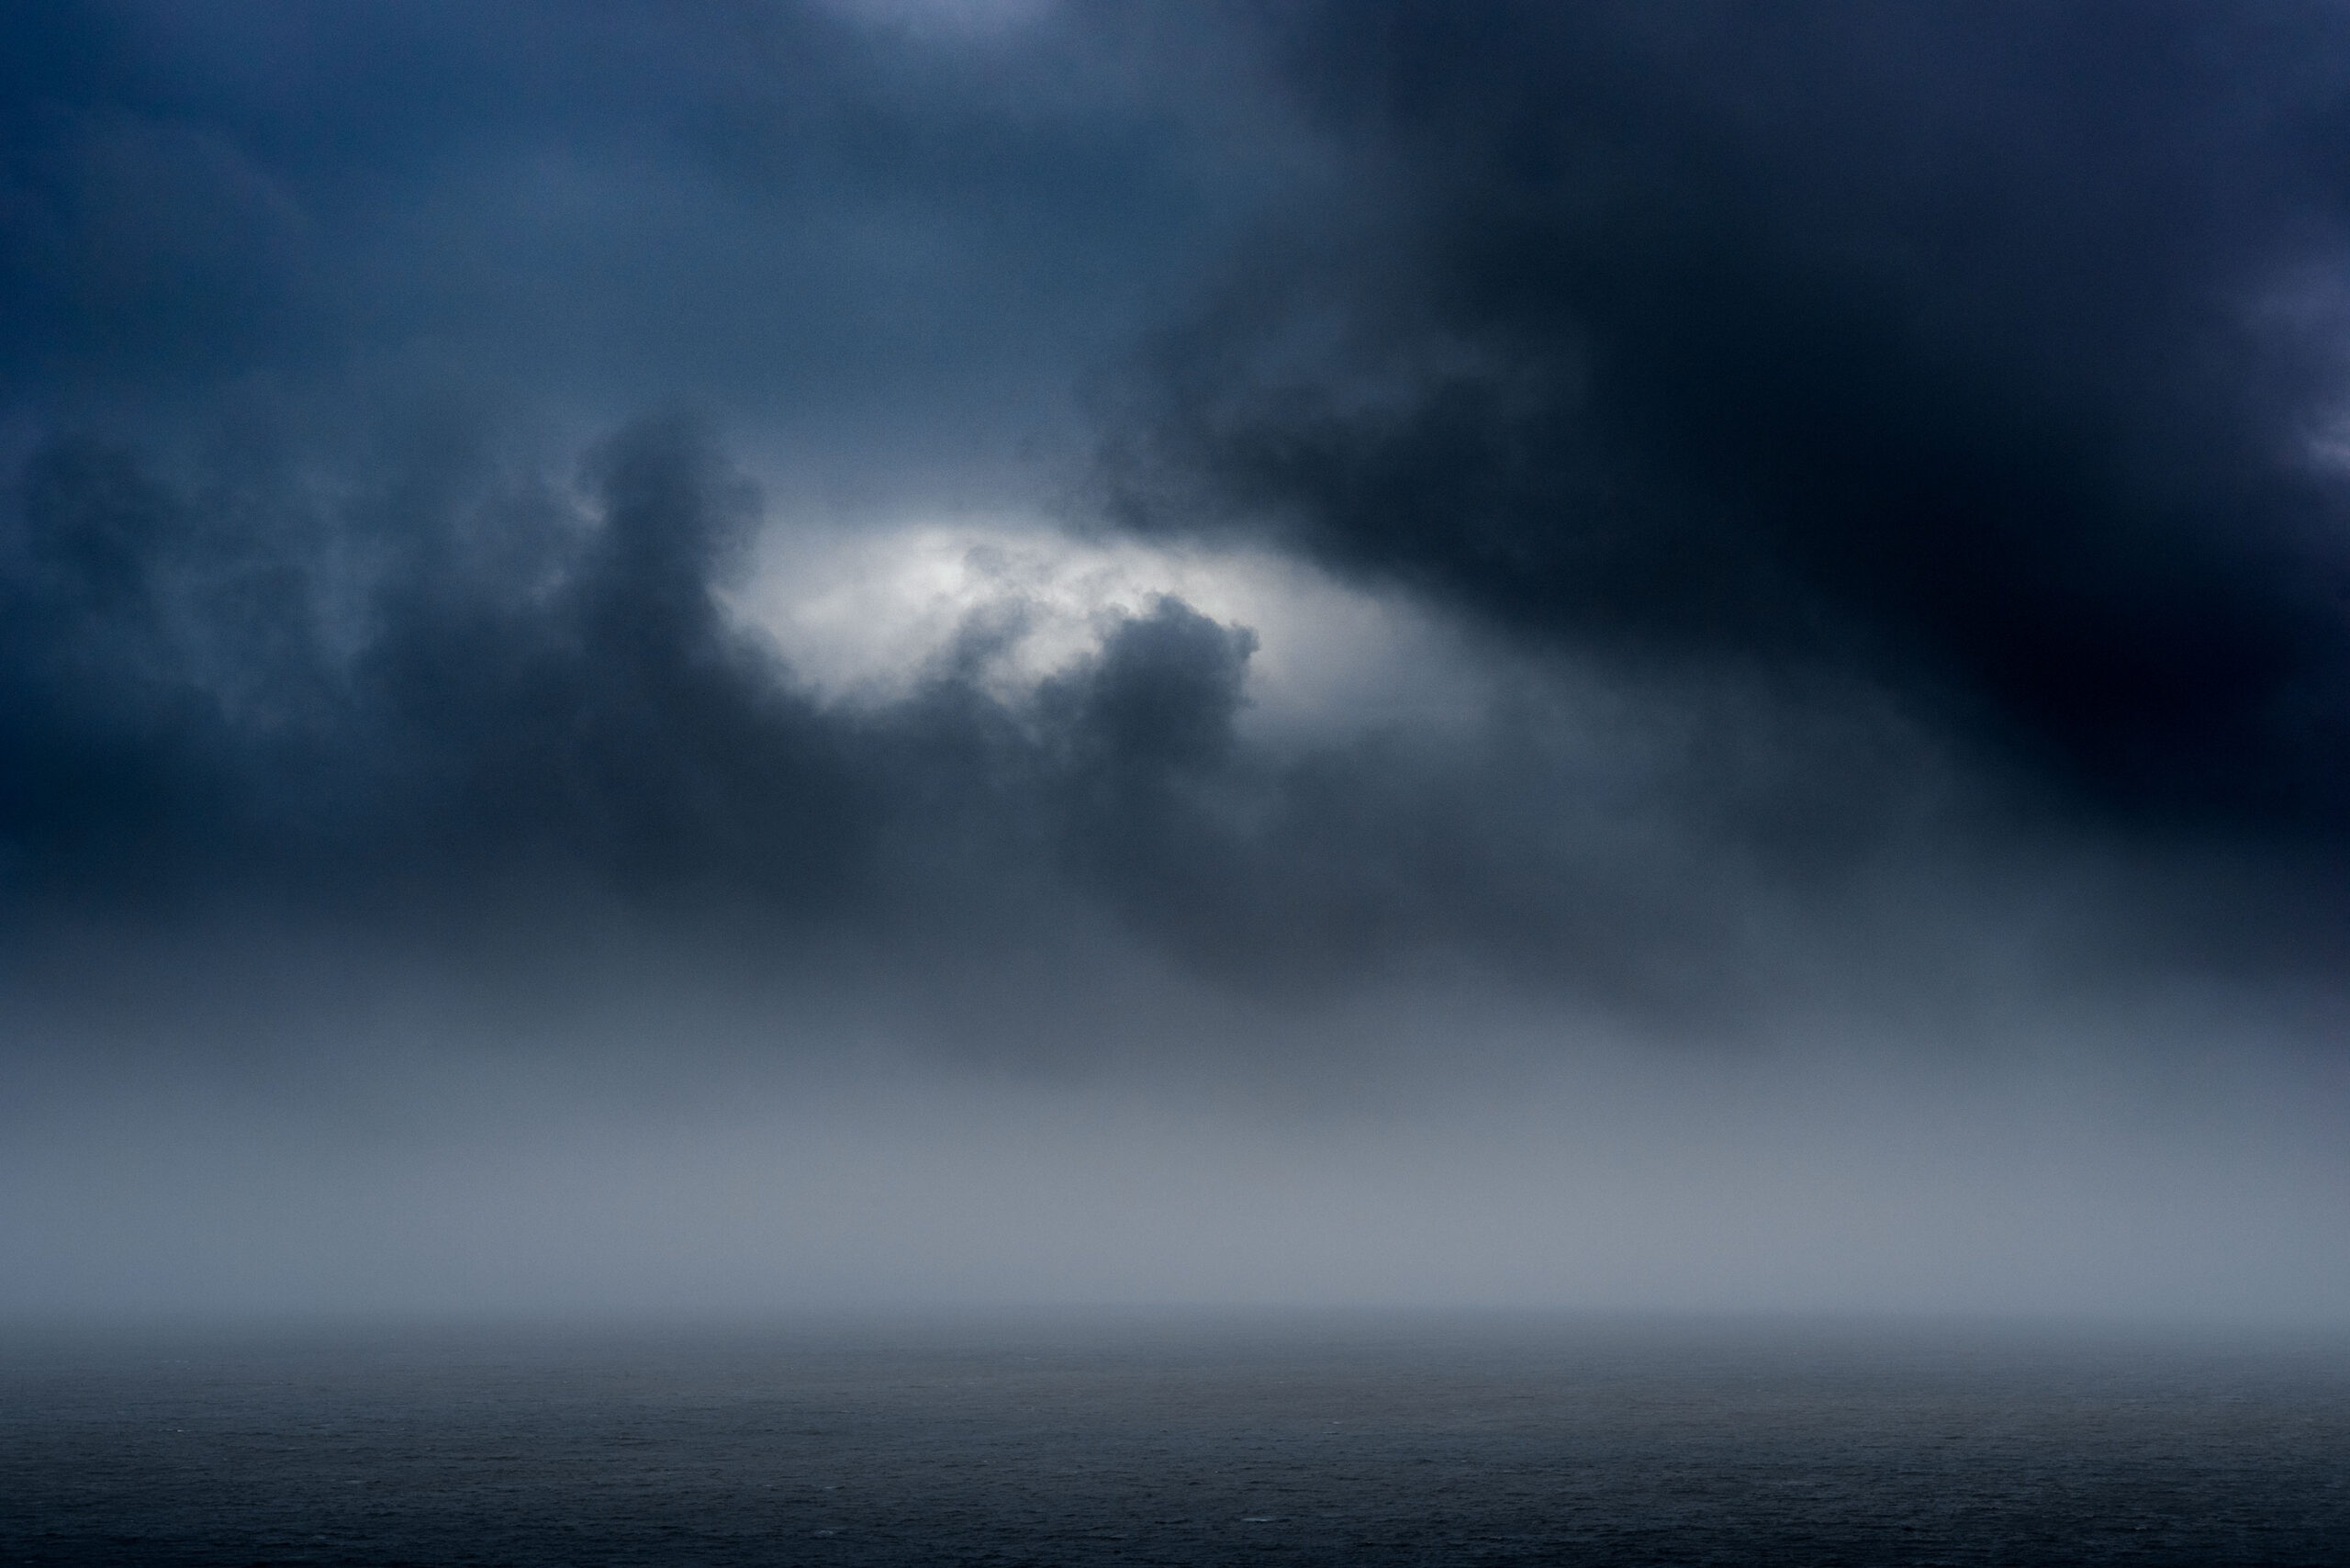 Cloudy and dramatic seascape from the english coast.